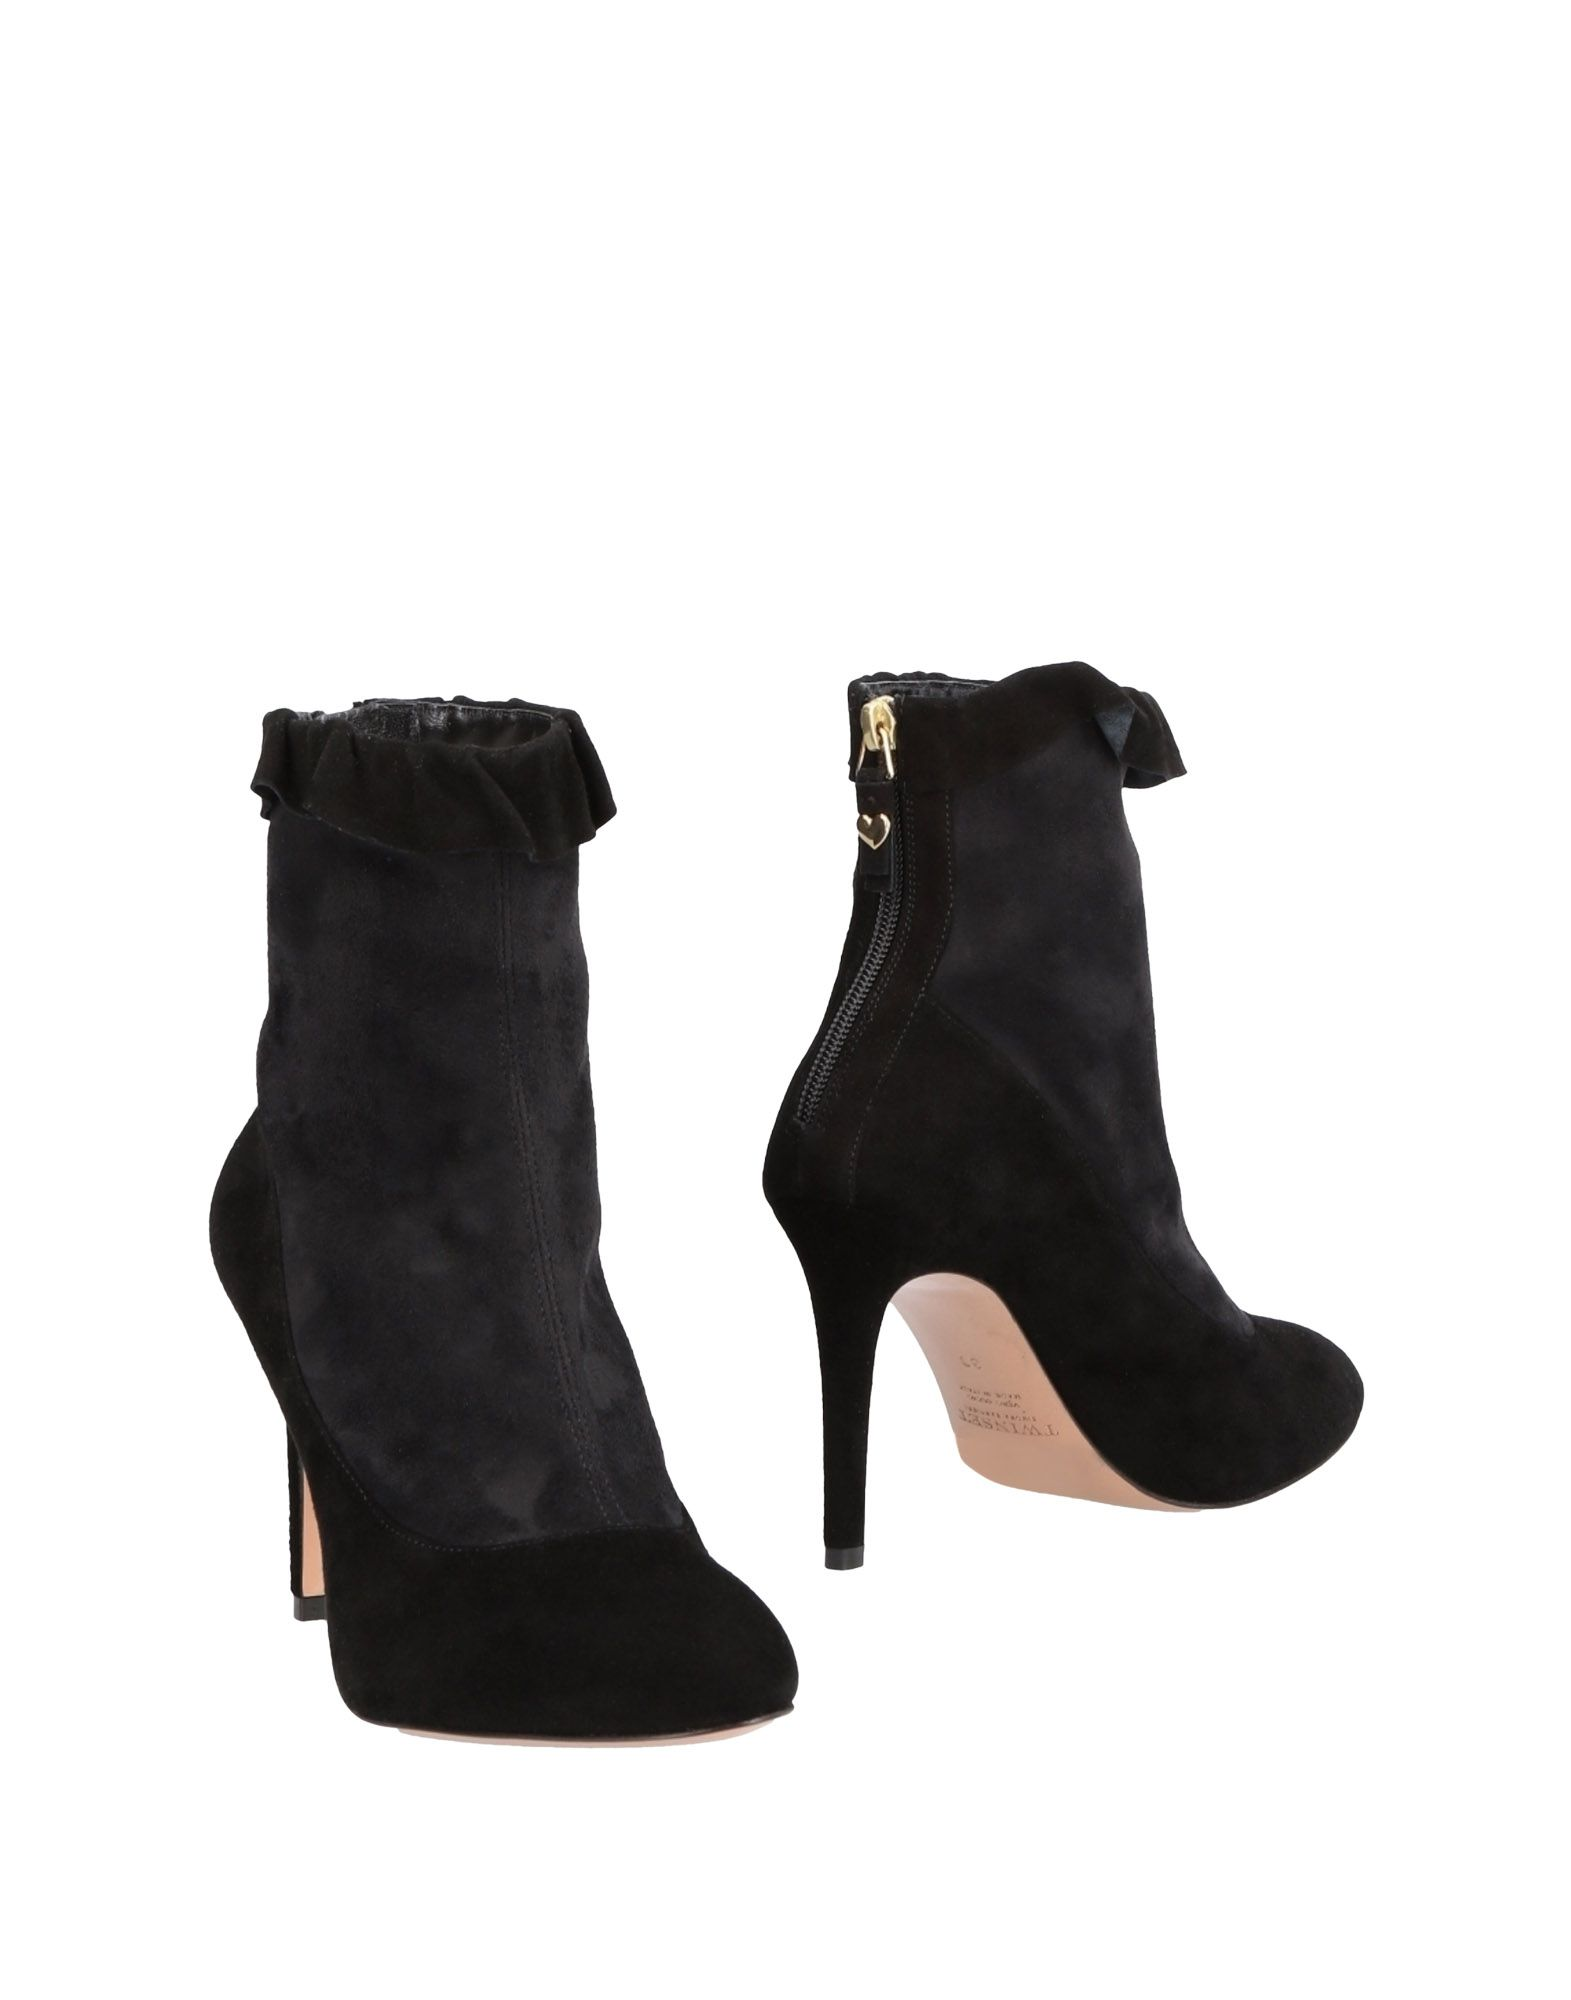 Twin-Set - Simona Barbieri Ankle Boot - Twin-Set Women Twin-Set Simona Barbieri Ankle Boots online on  Canada - 11484785FL 3b9a9c